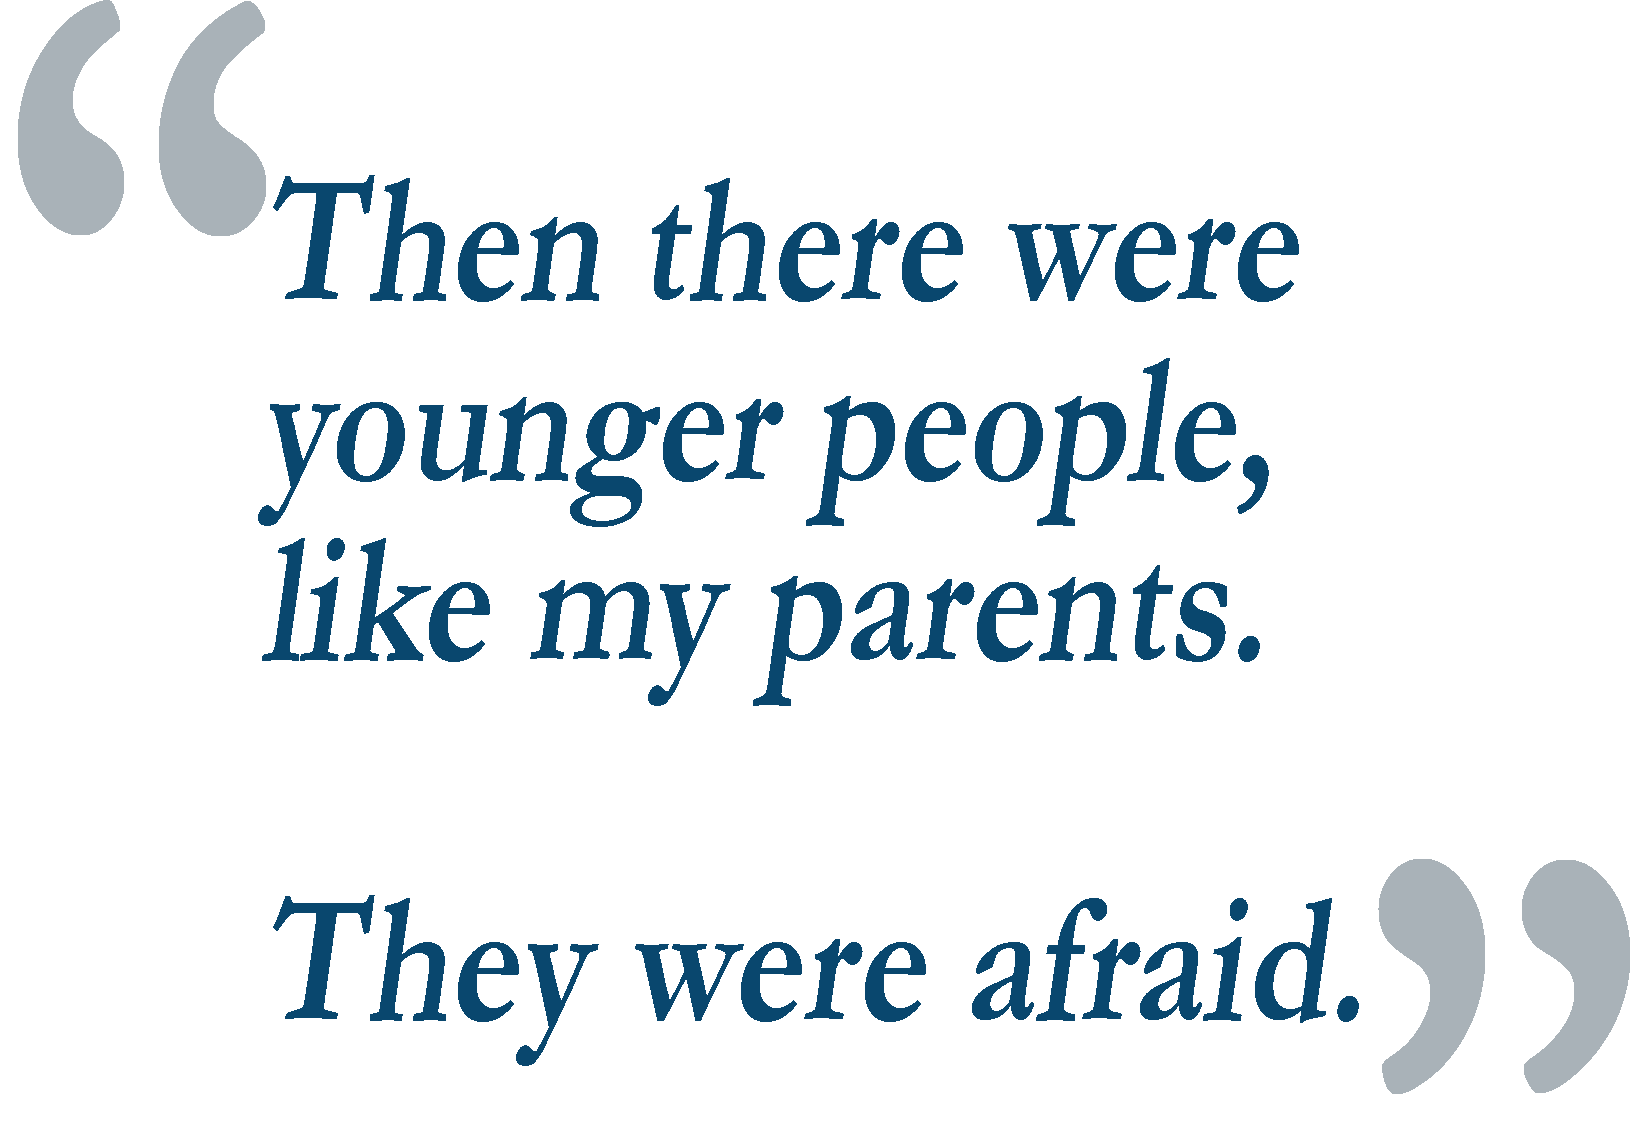 Quote: Then there were younger people, like my parents. They were afraid.